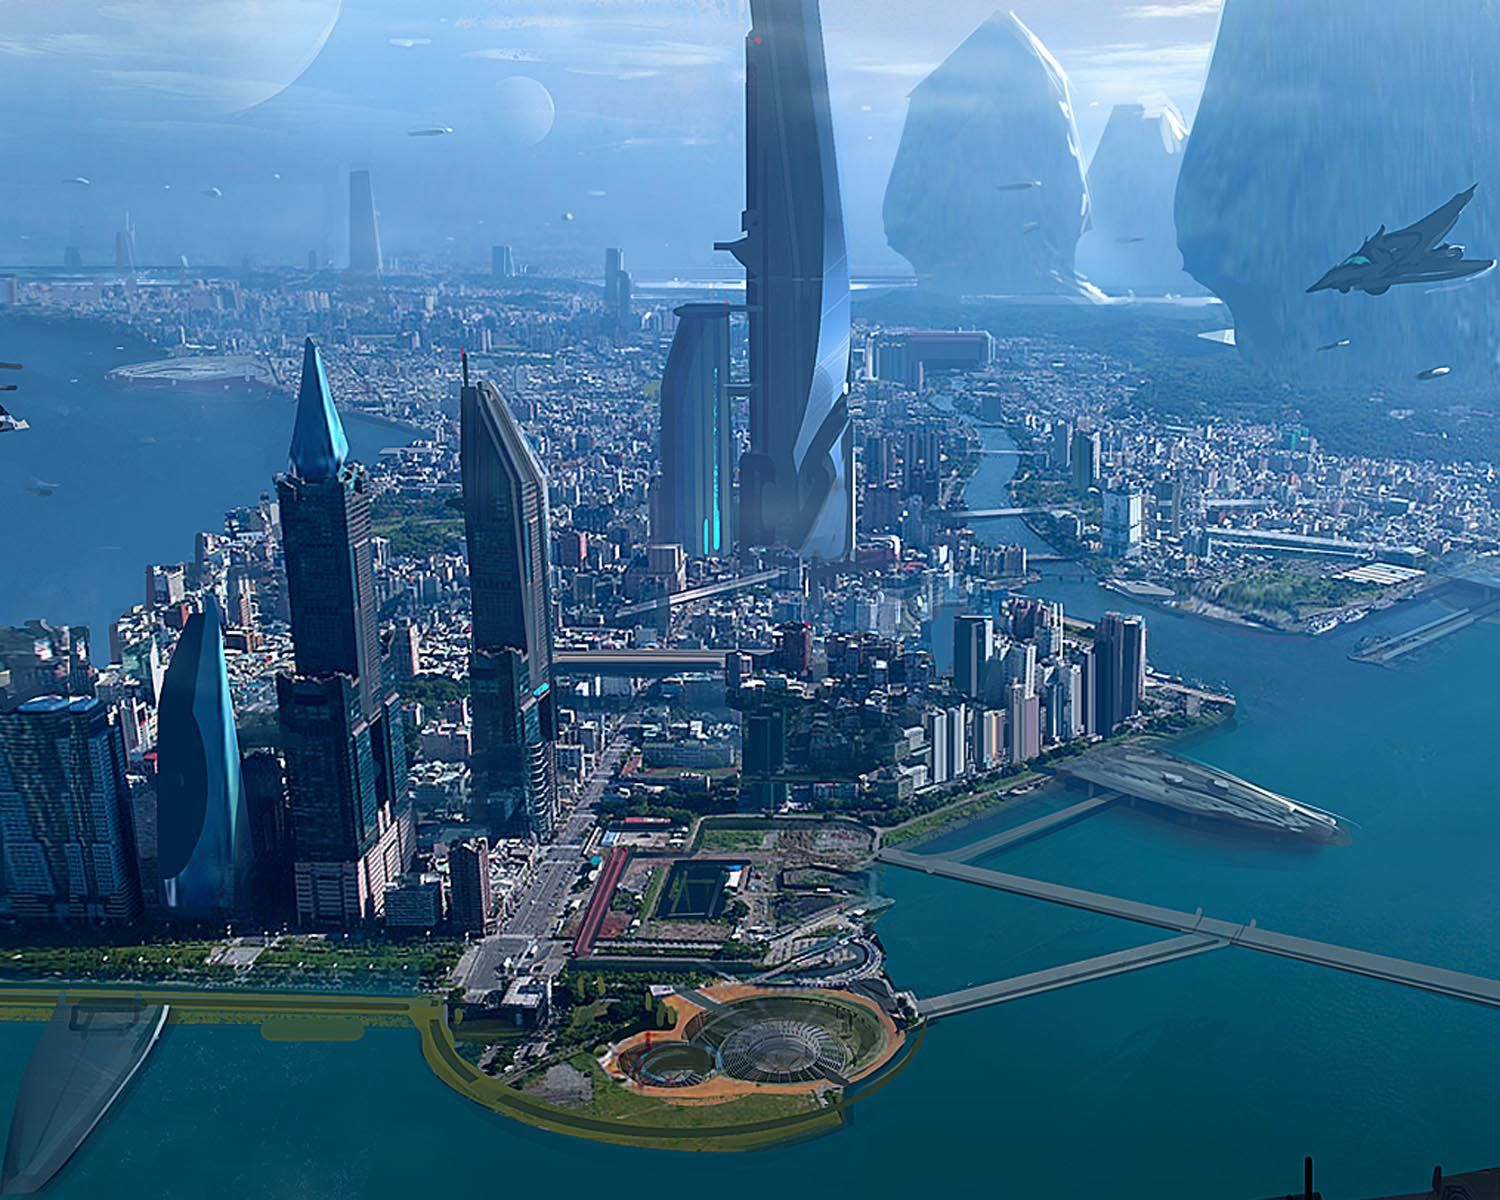 Futuristic scifi city on the planet of terra nova - but ...